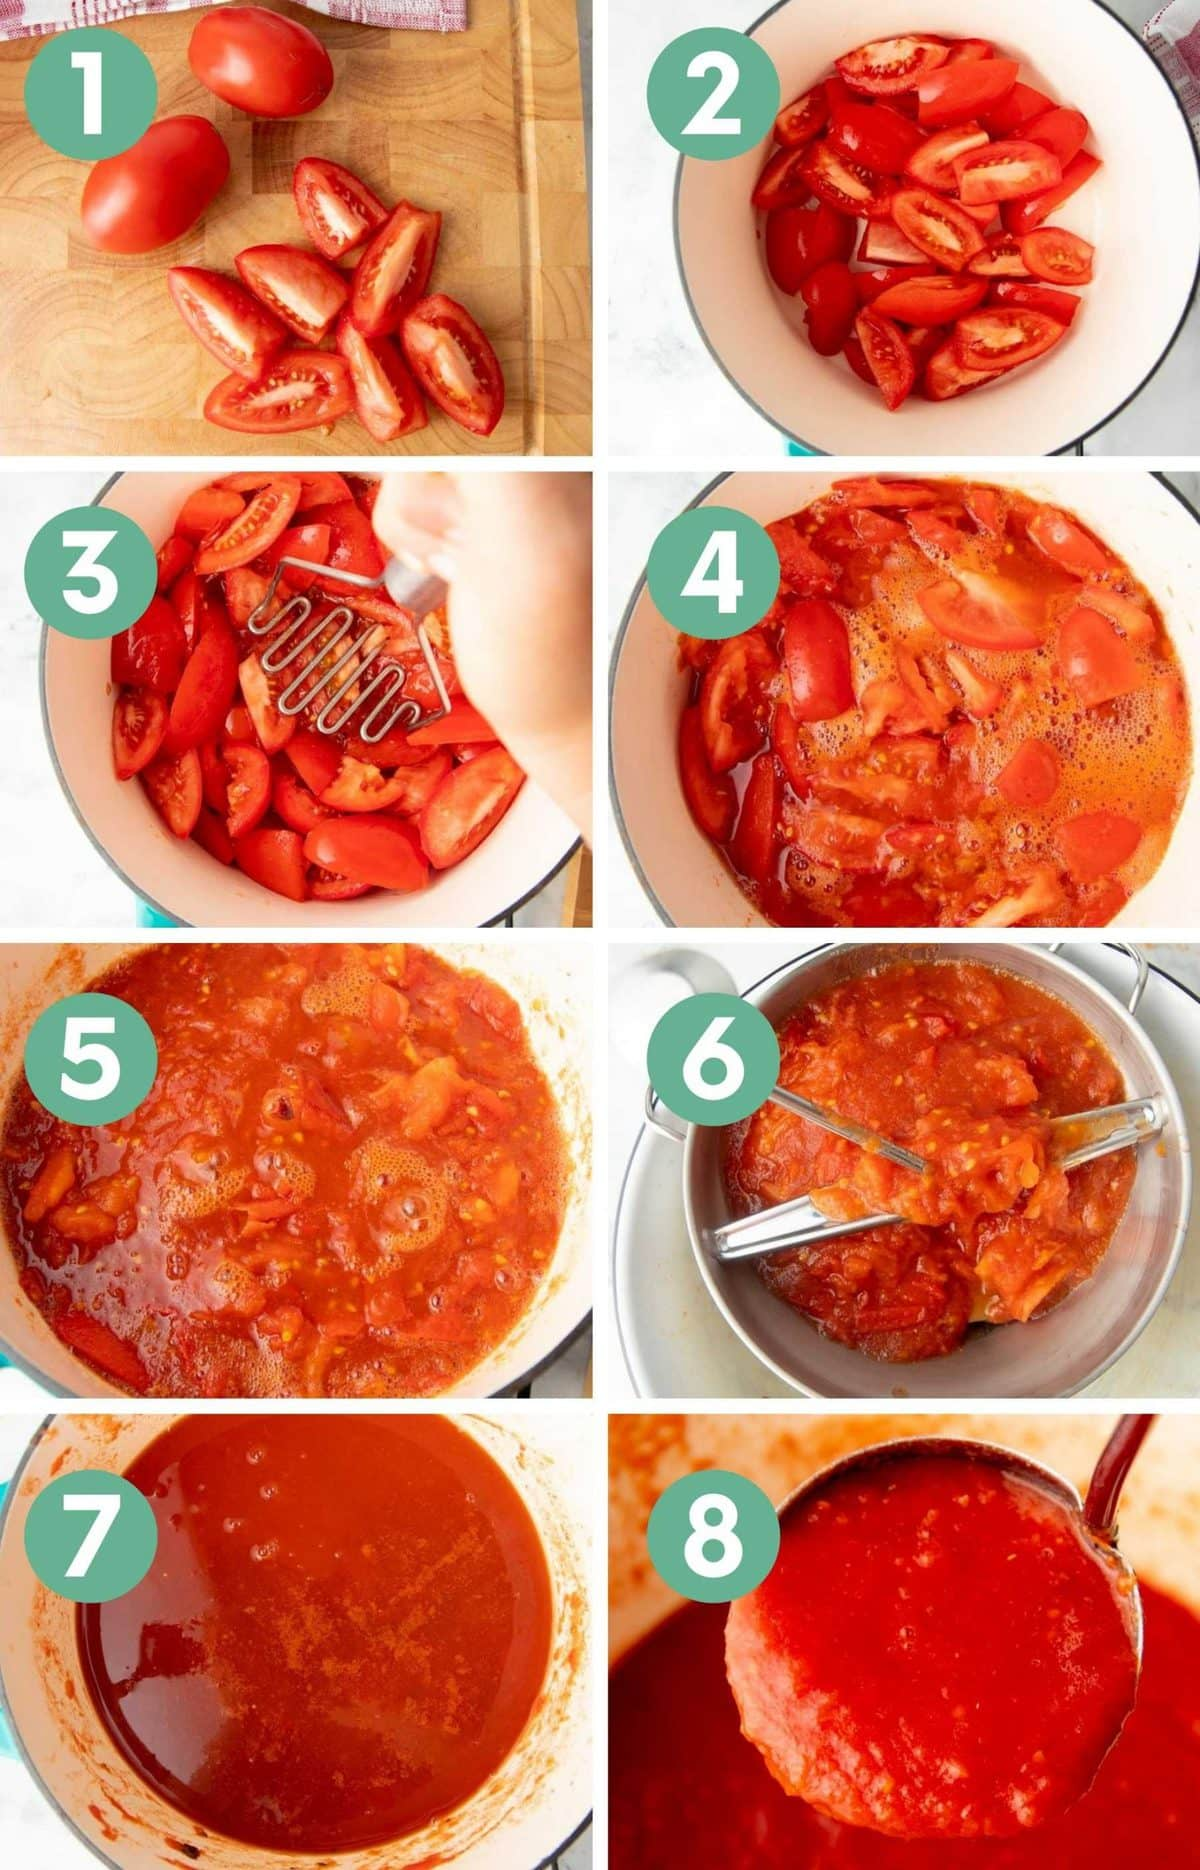 A collage of numbered images show the steps for making canned tomato sauce